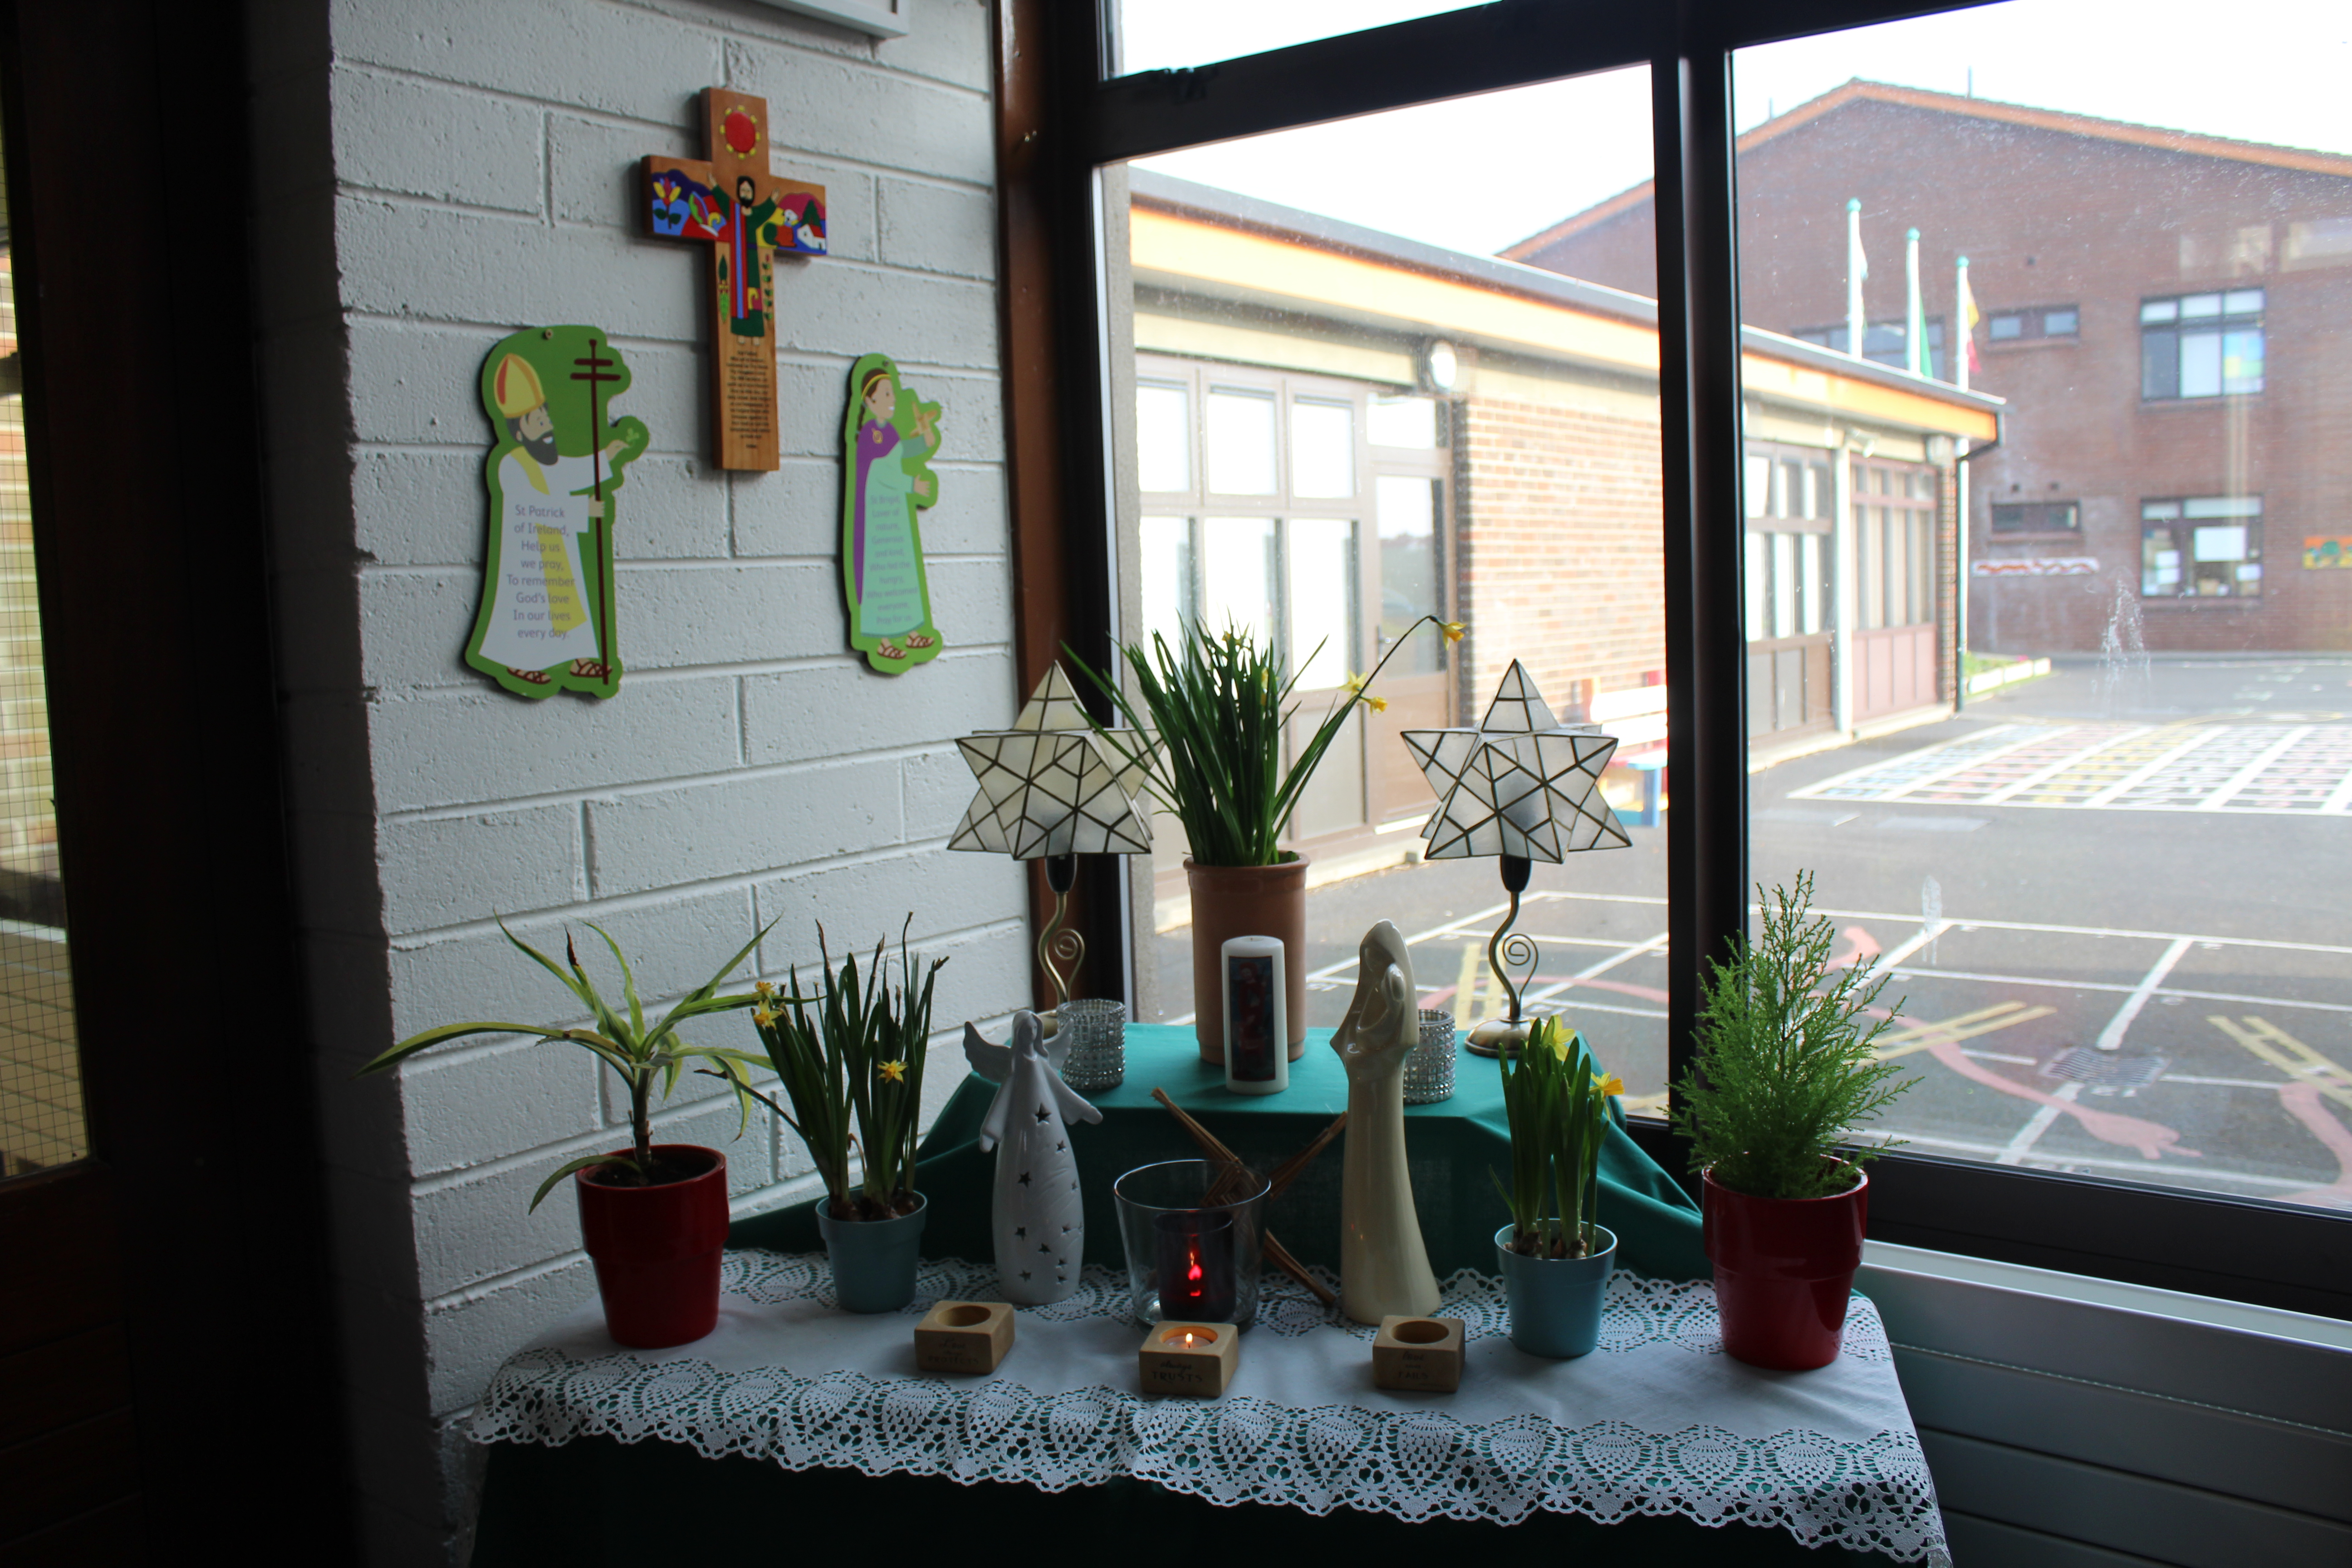 Sacred Space - School Entrance